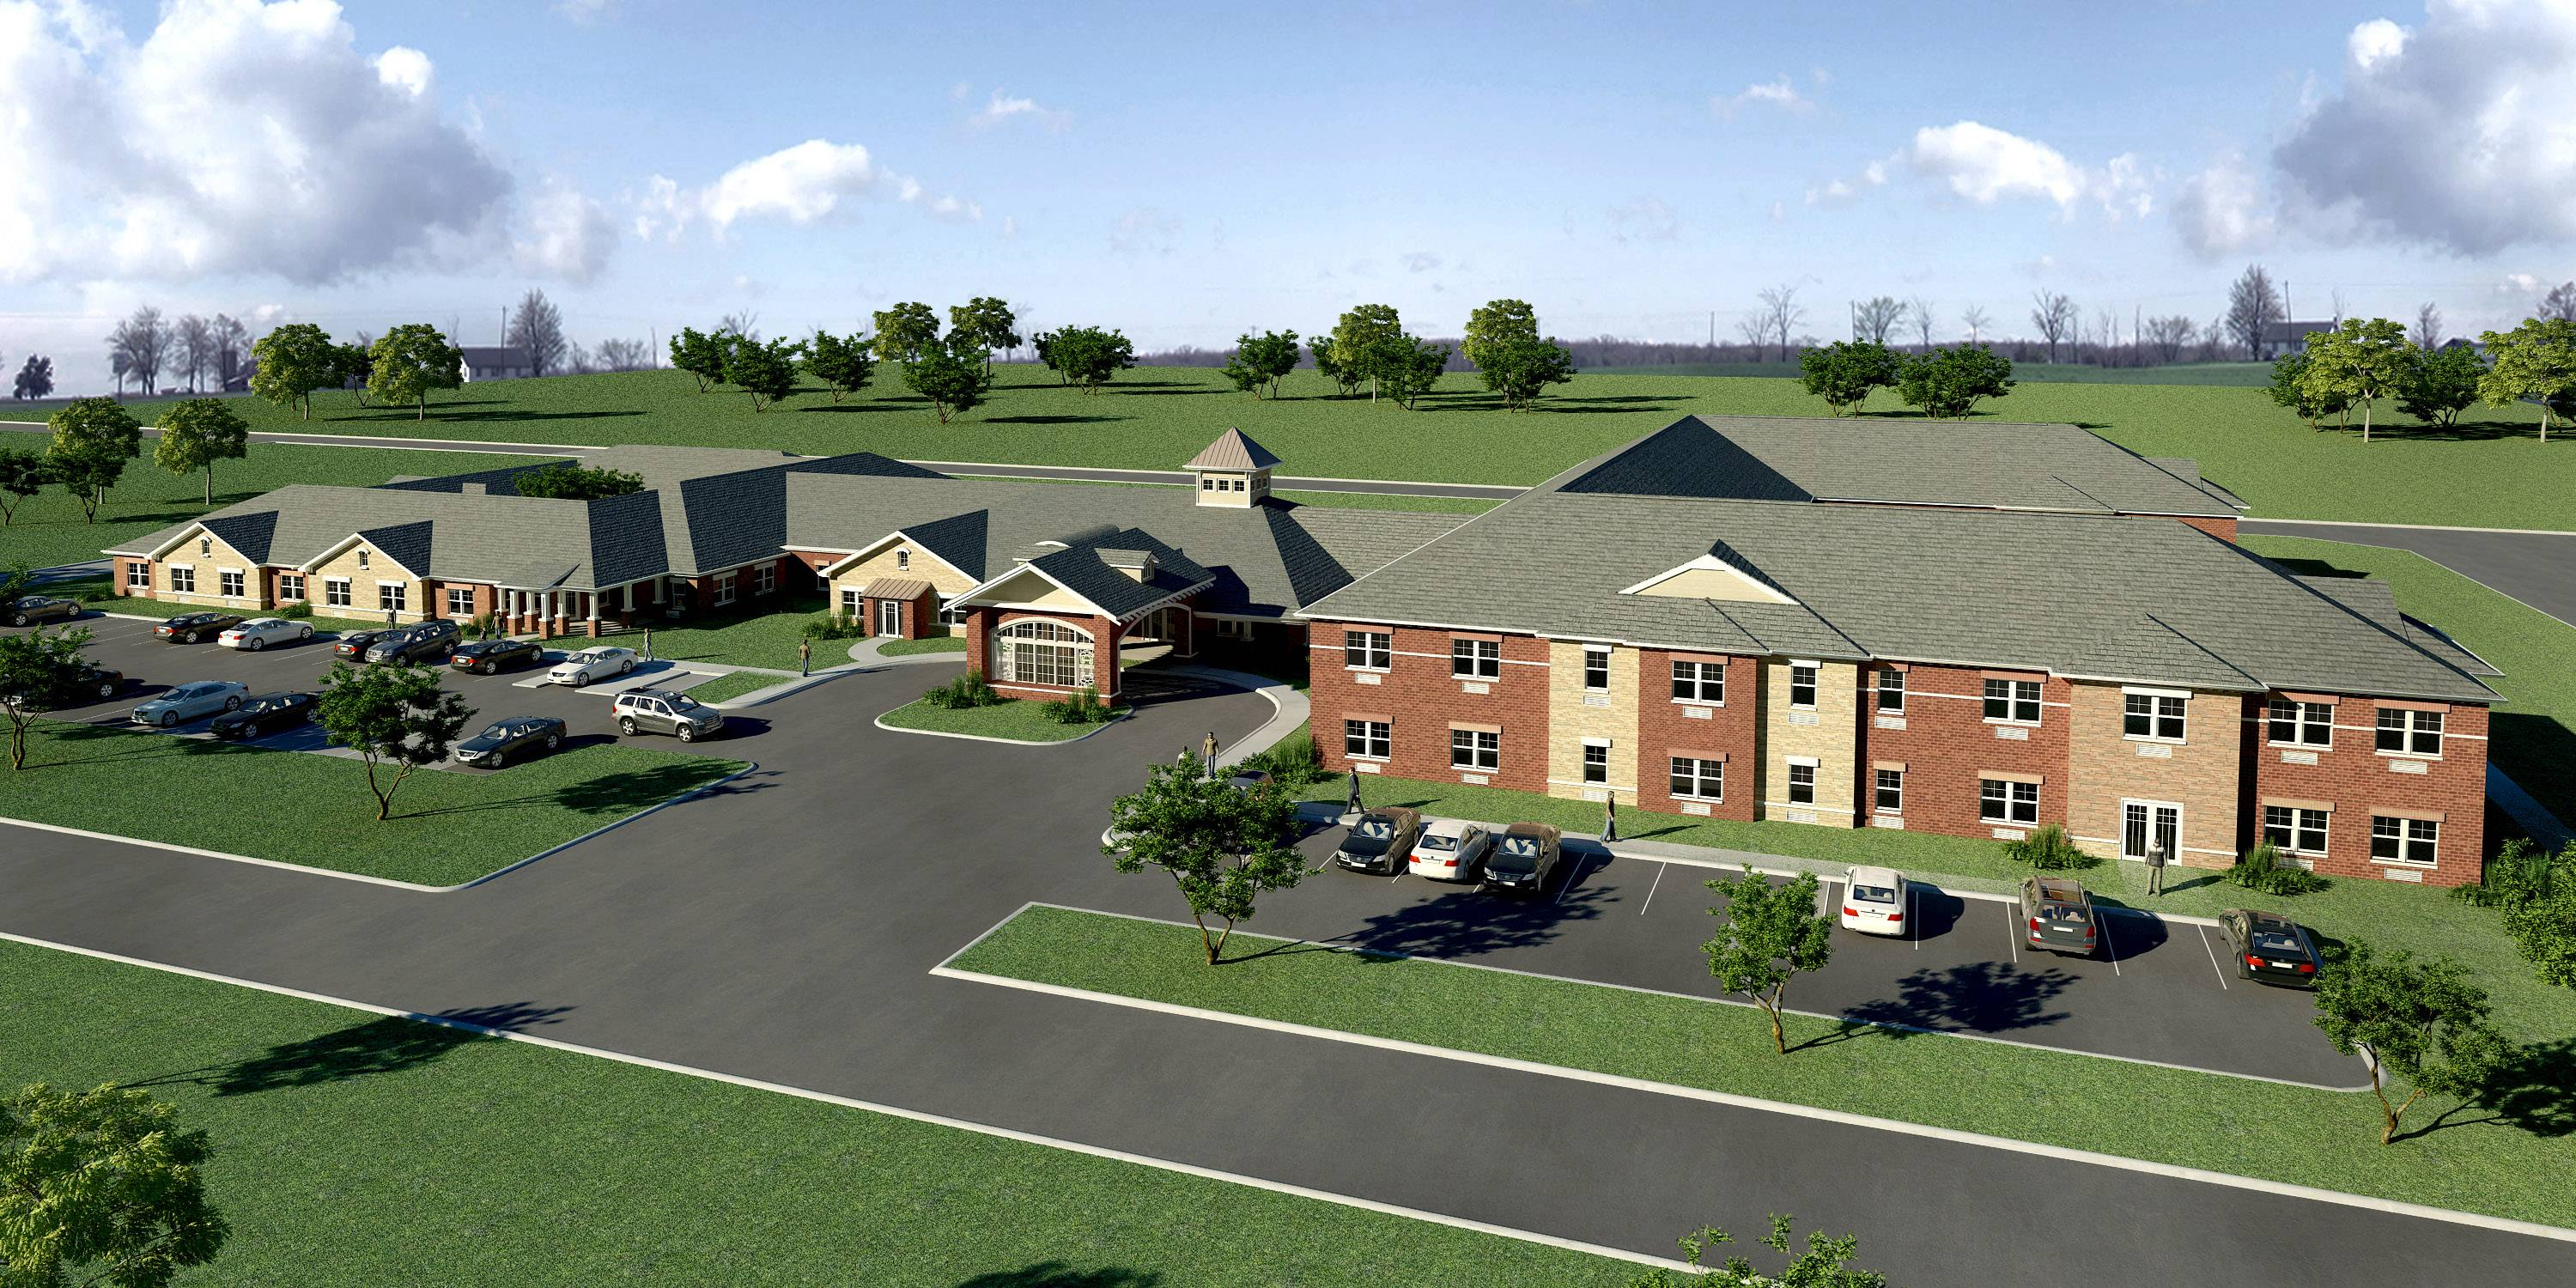 Elgin Memory Care, which will have 56 assisted living and 24 memory care apartments, is being built by Bright Oaks Group at the intersection of Shannon Parkway and Daisy Lane in Elgin.